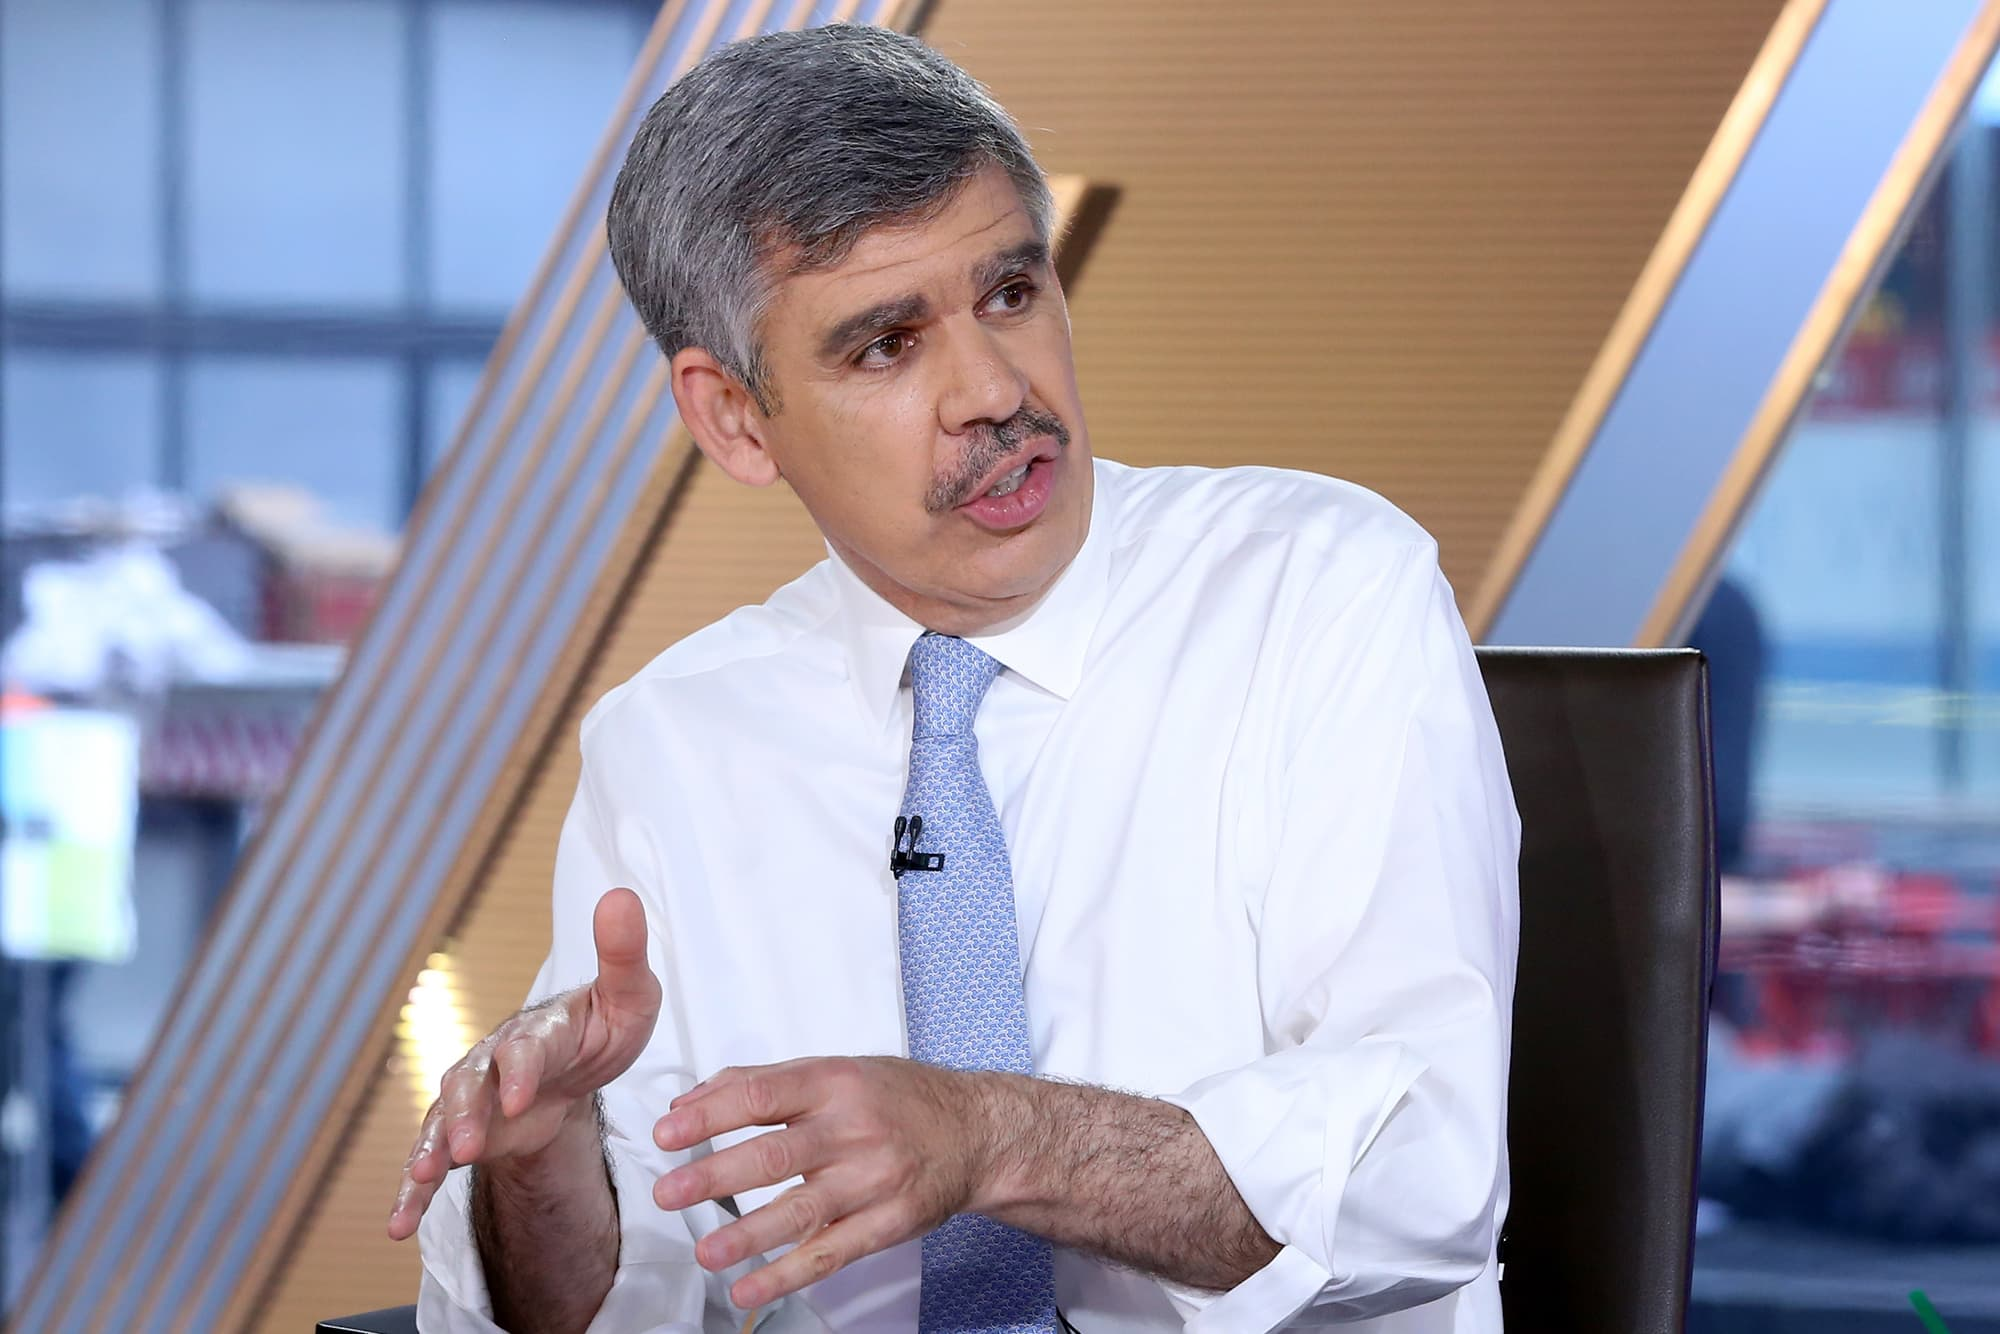 El-Erian: Don't underestimate the possibility of a 'Reagan moment' for Trump on China